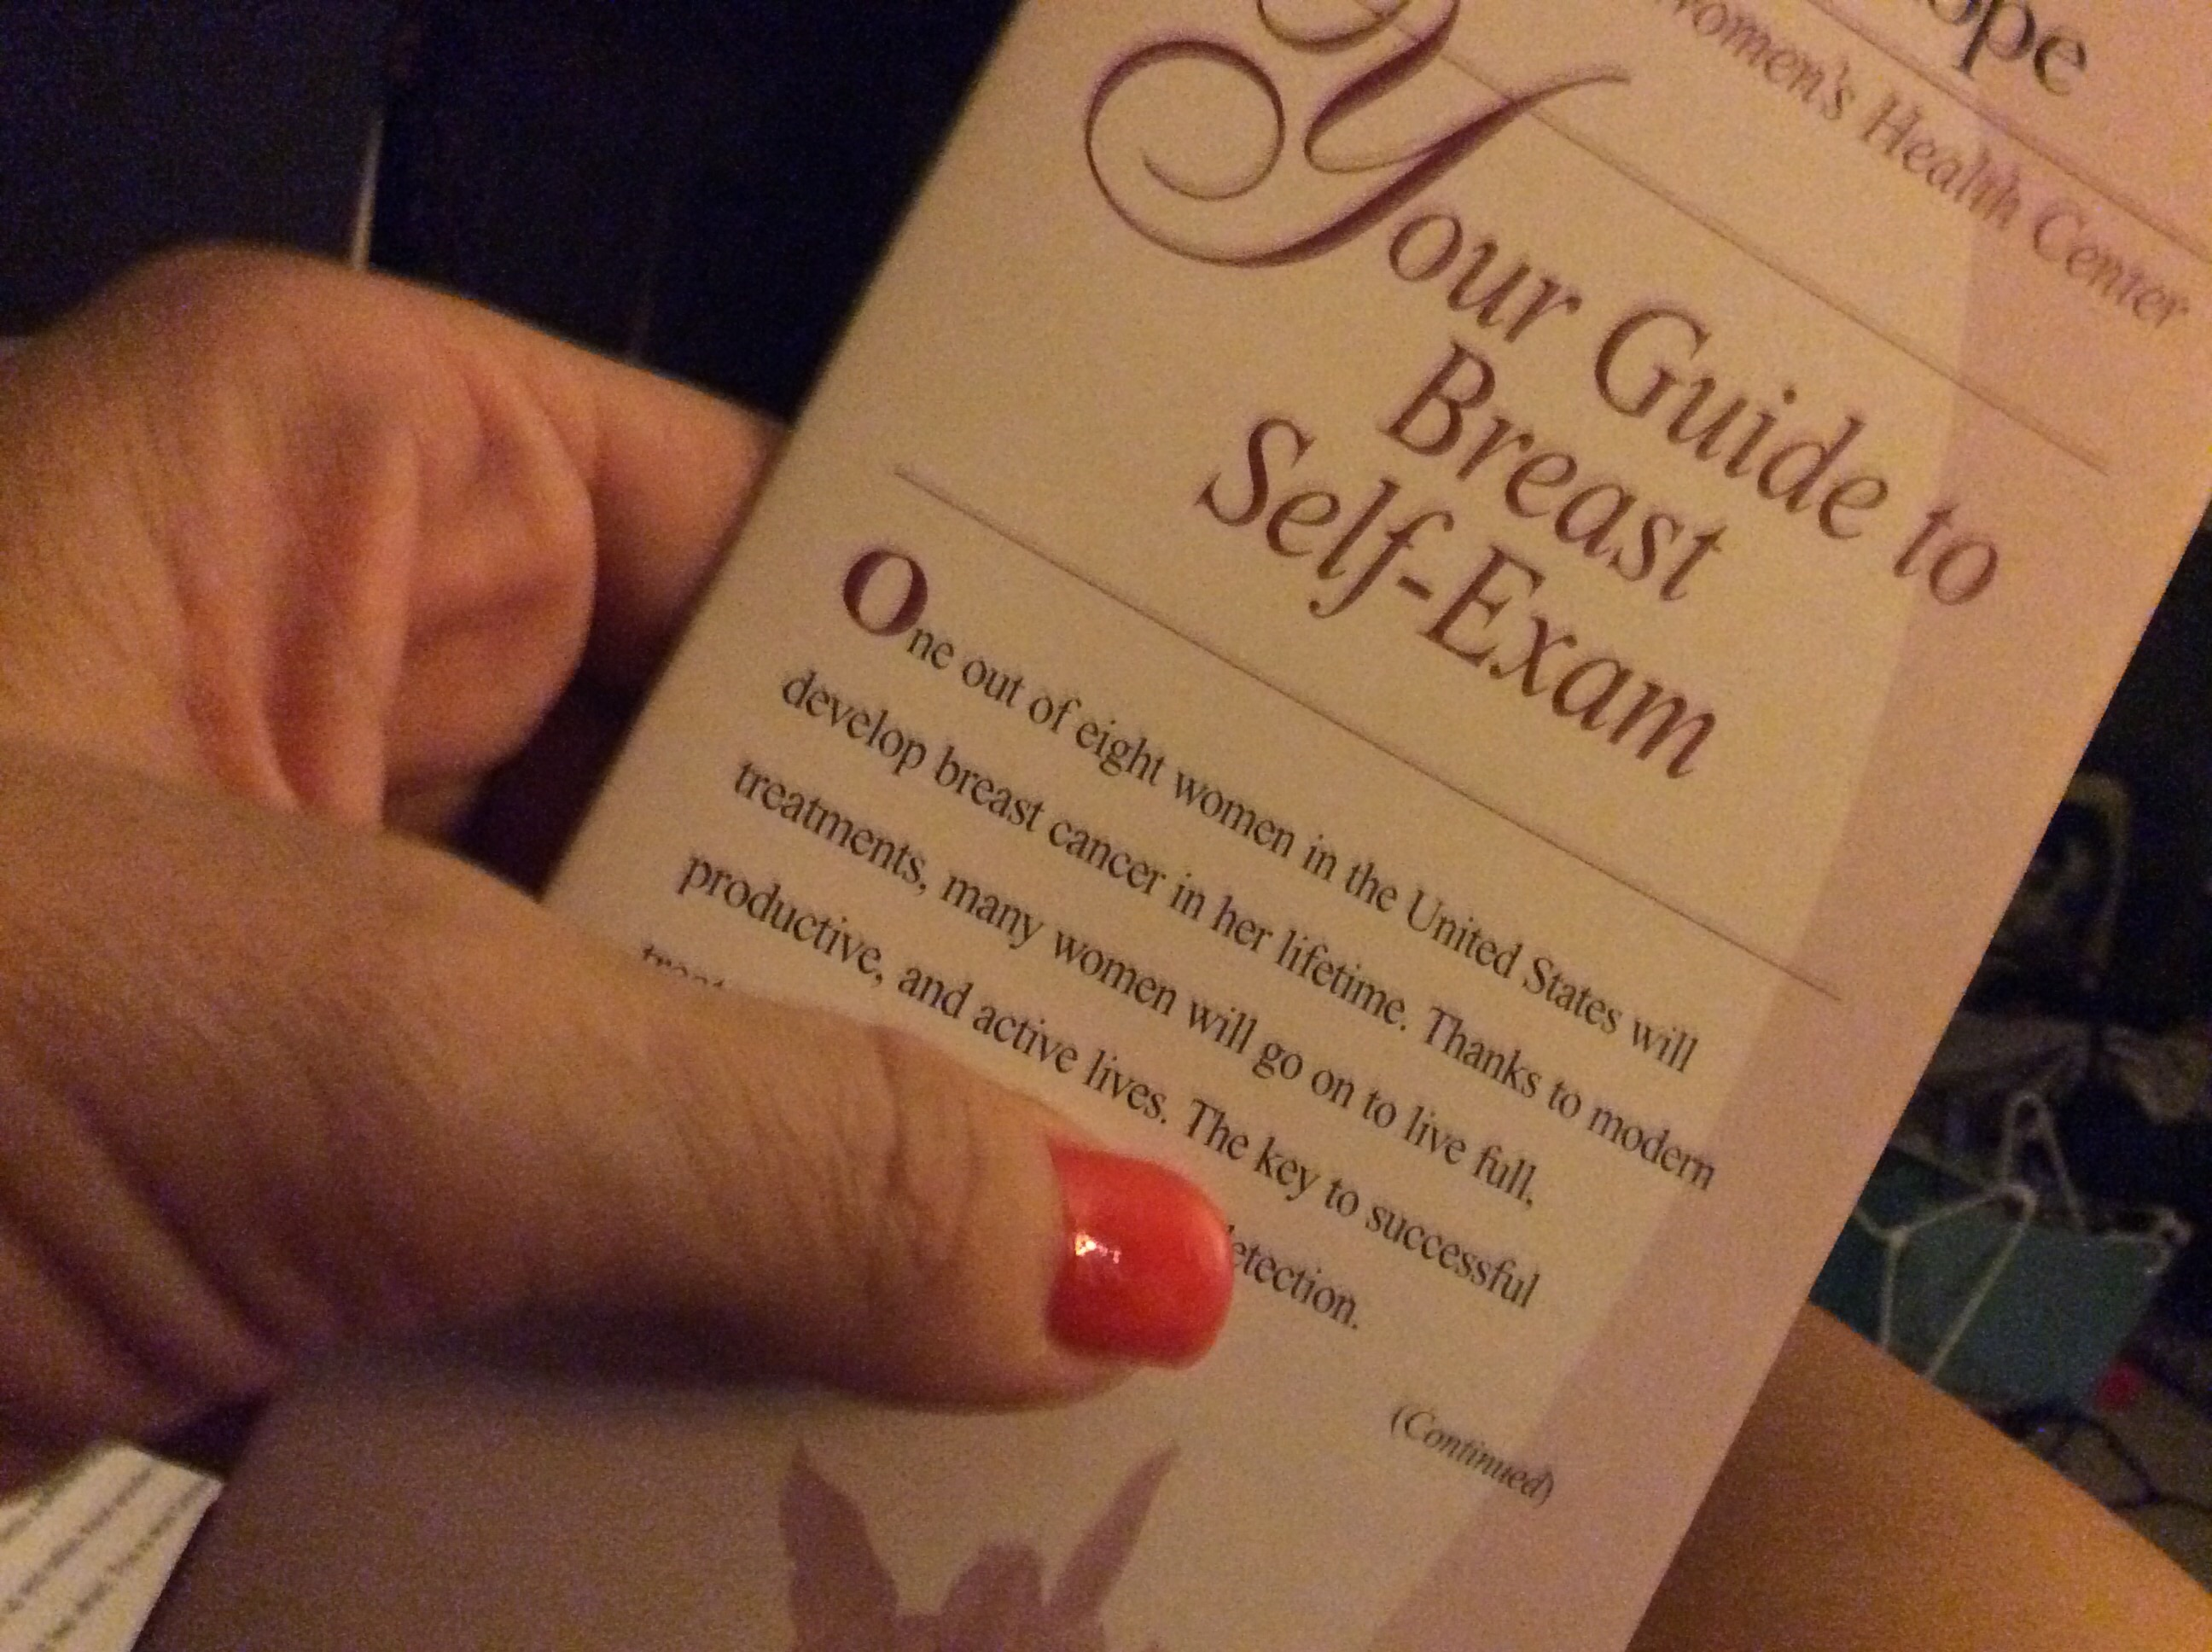 City of Hope offers free pamphlets to those who need instruction in self breast examination.